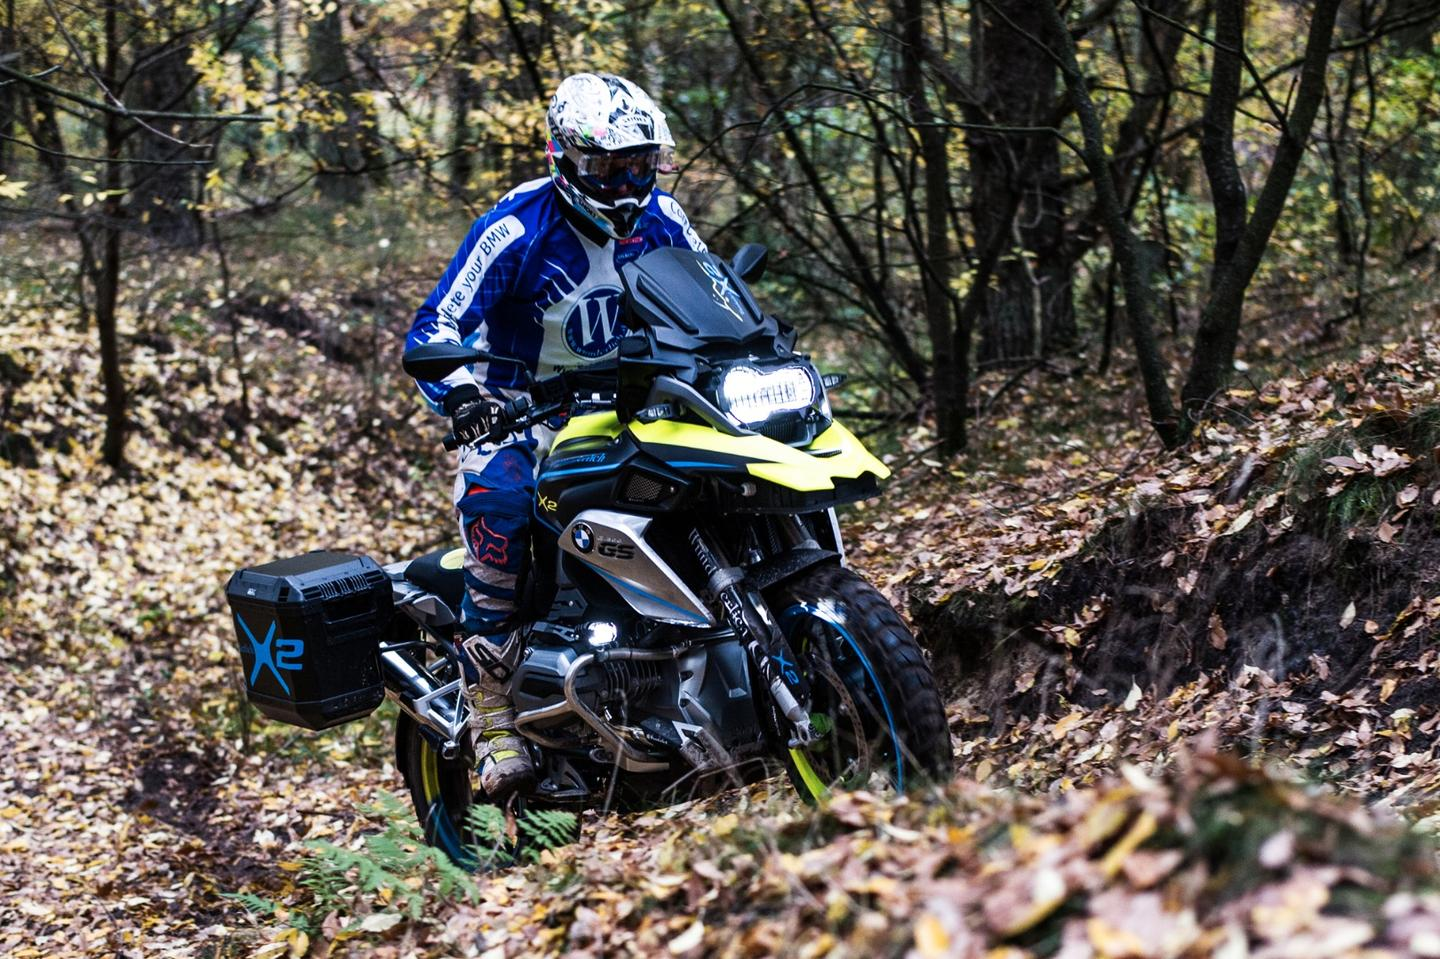 Wunderlich's 2WD BMW R1200GS LC: should be even more capable in the rough stuff